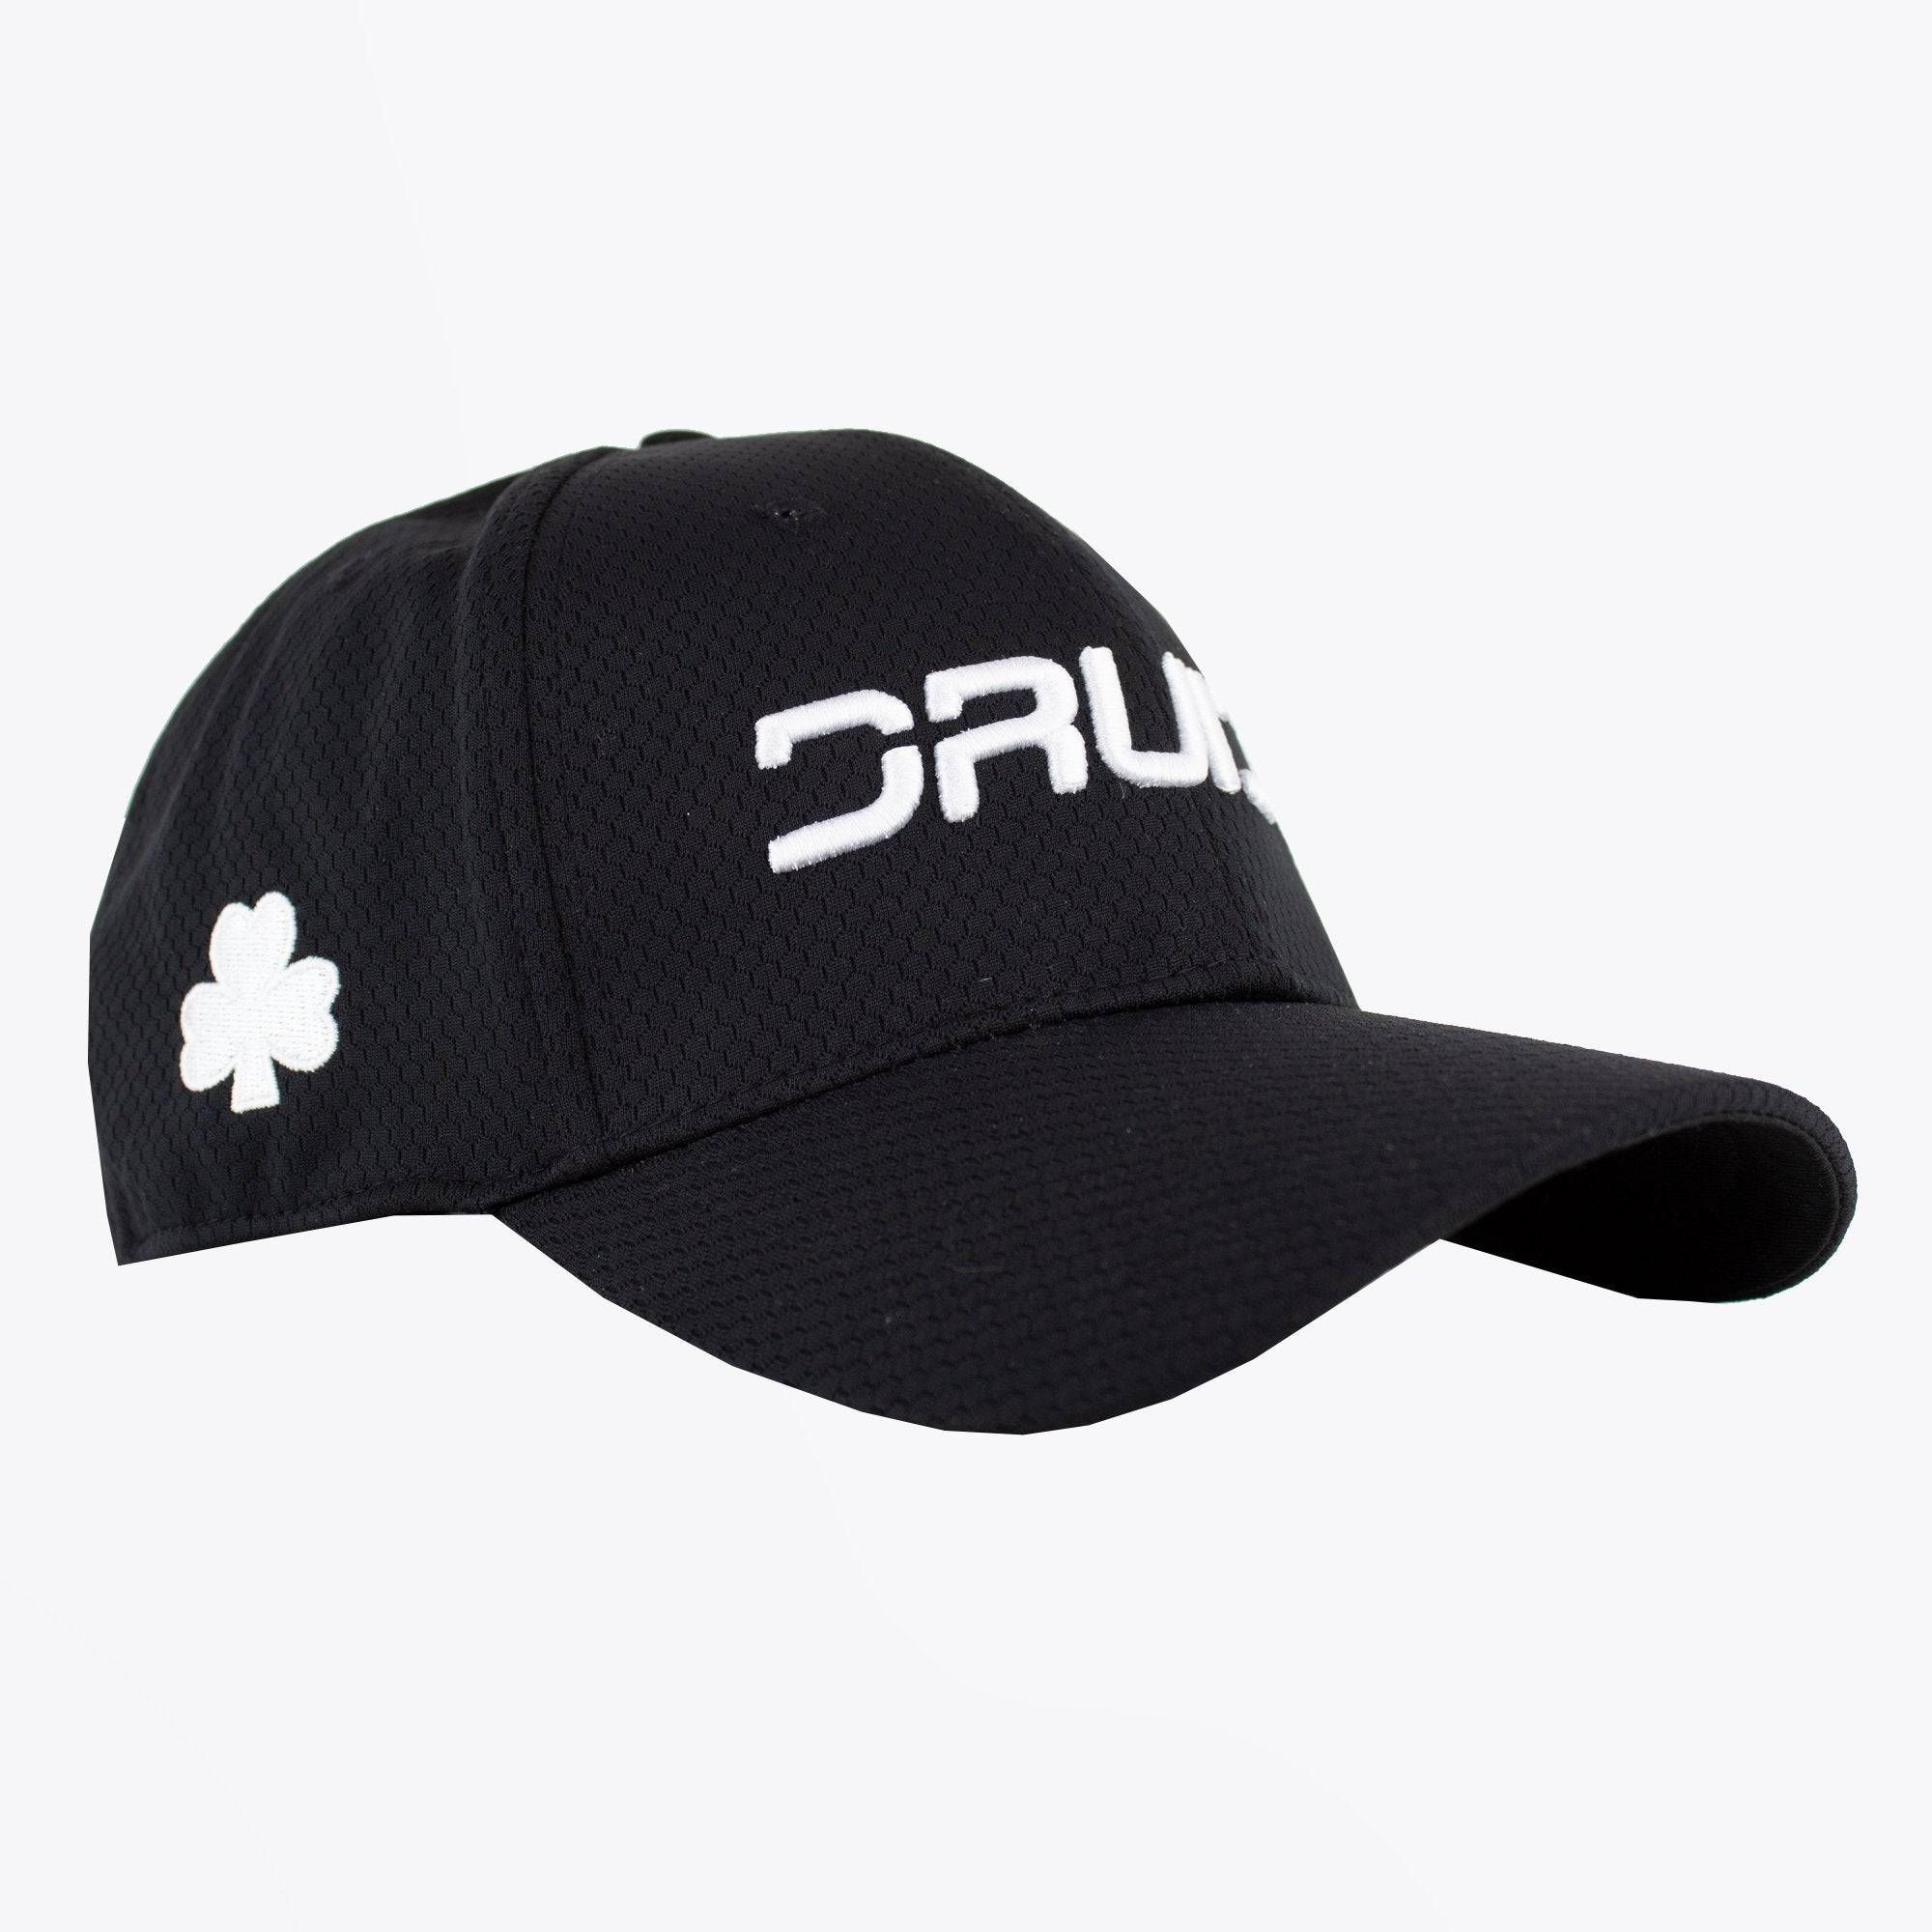 Druids Golf - Tour Cap Black (Druids)